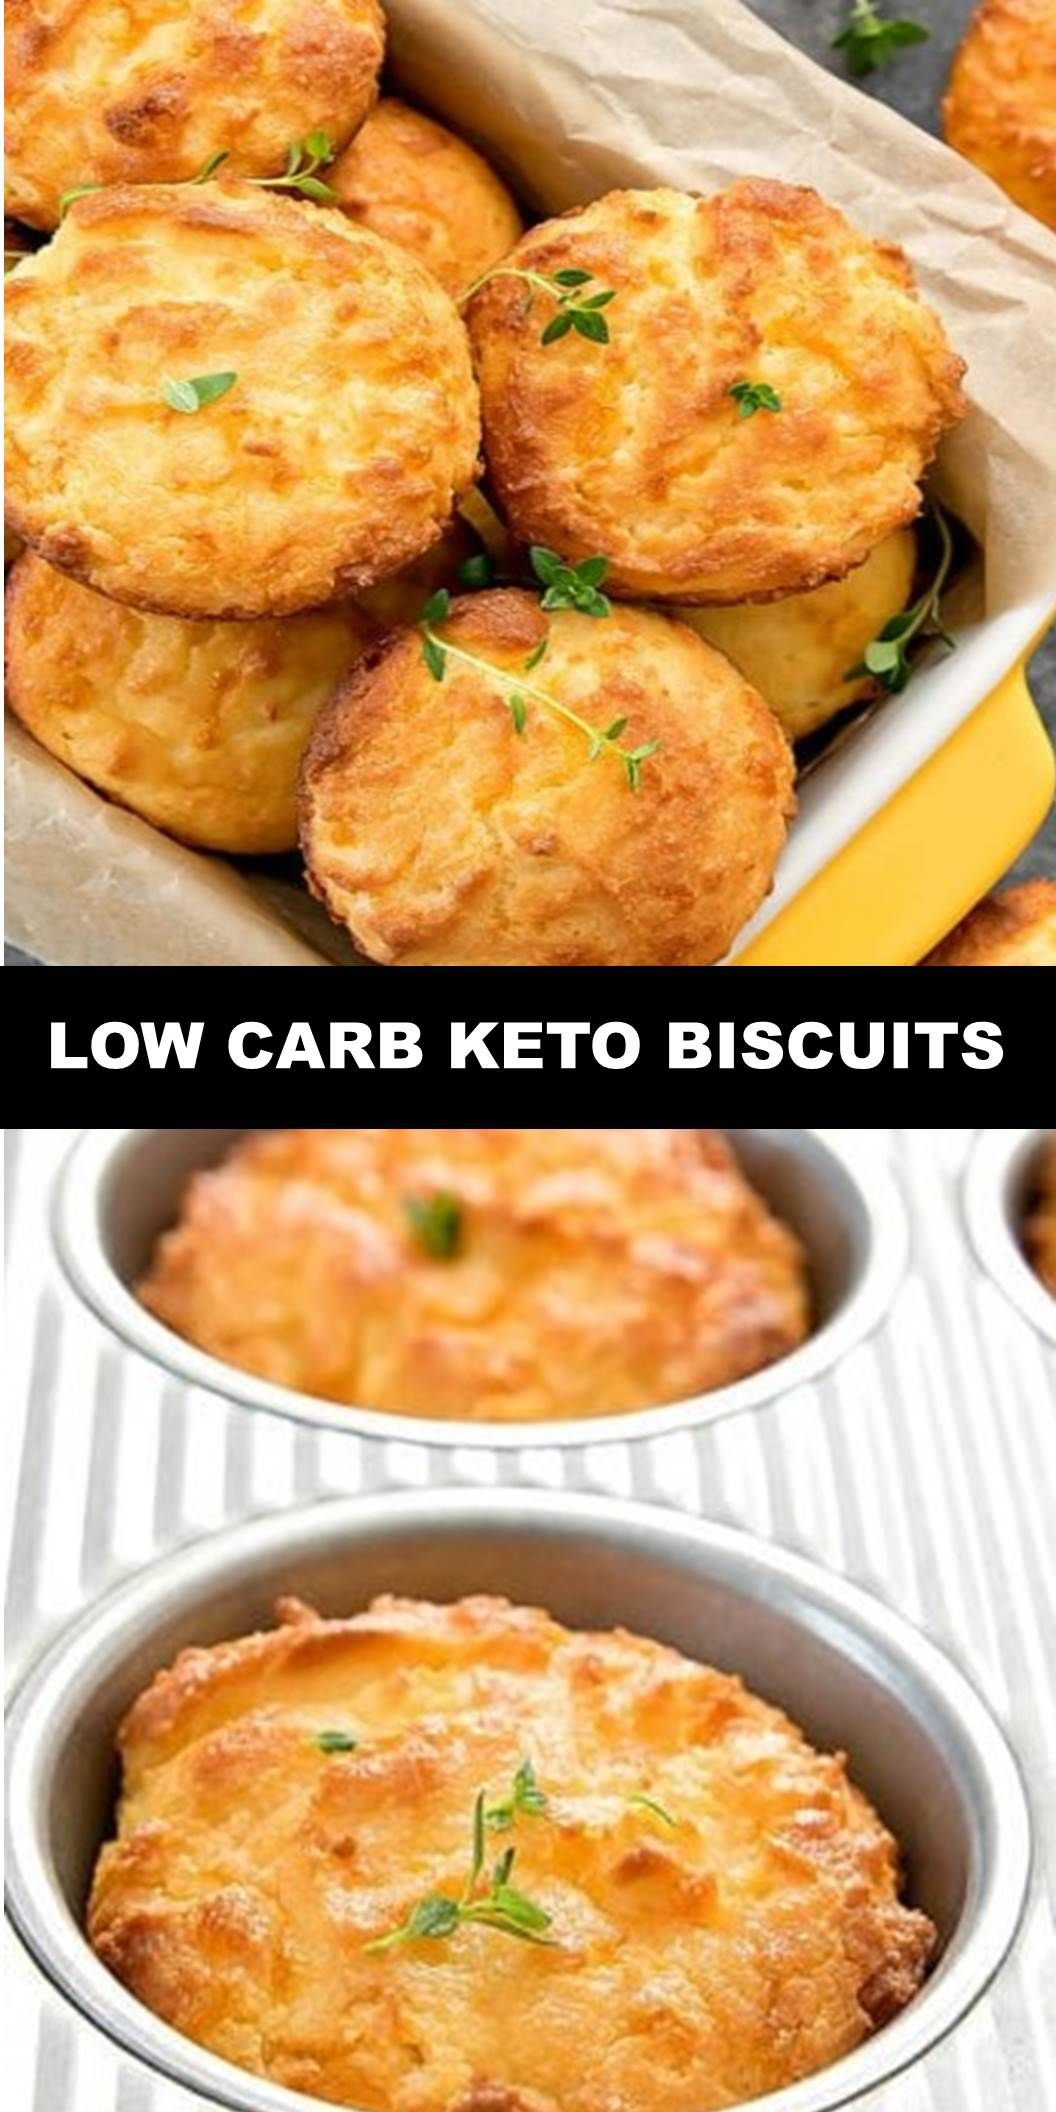 The World's Most Delicious Low Carb Keto Biscuits PREP TIME: 10 MINUTESCOOK TIME: 10 MINUTESTOTAL TIME: 20 MINUTESCOURSE: APPETIZER CUISINE: AMERICAN SERVINGS: 9 BISCUITS These tender, soft drop biscuits are ready in less than 30 minutes. You won't miss the flour at all! These biscuits are gluten free, keto and low carb.